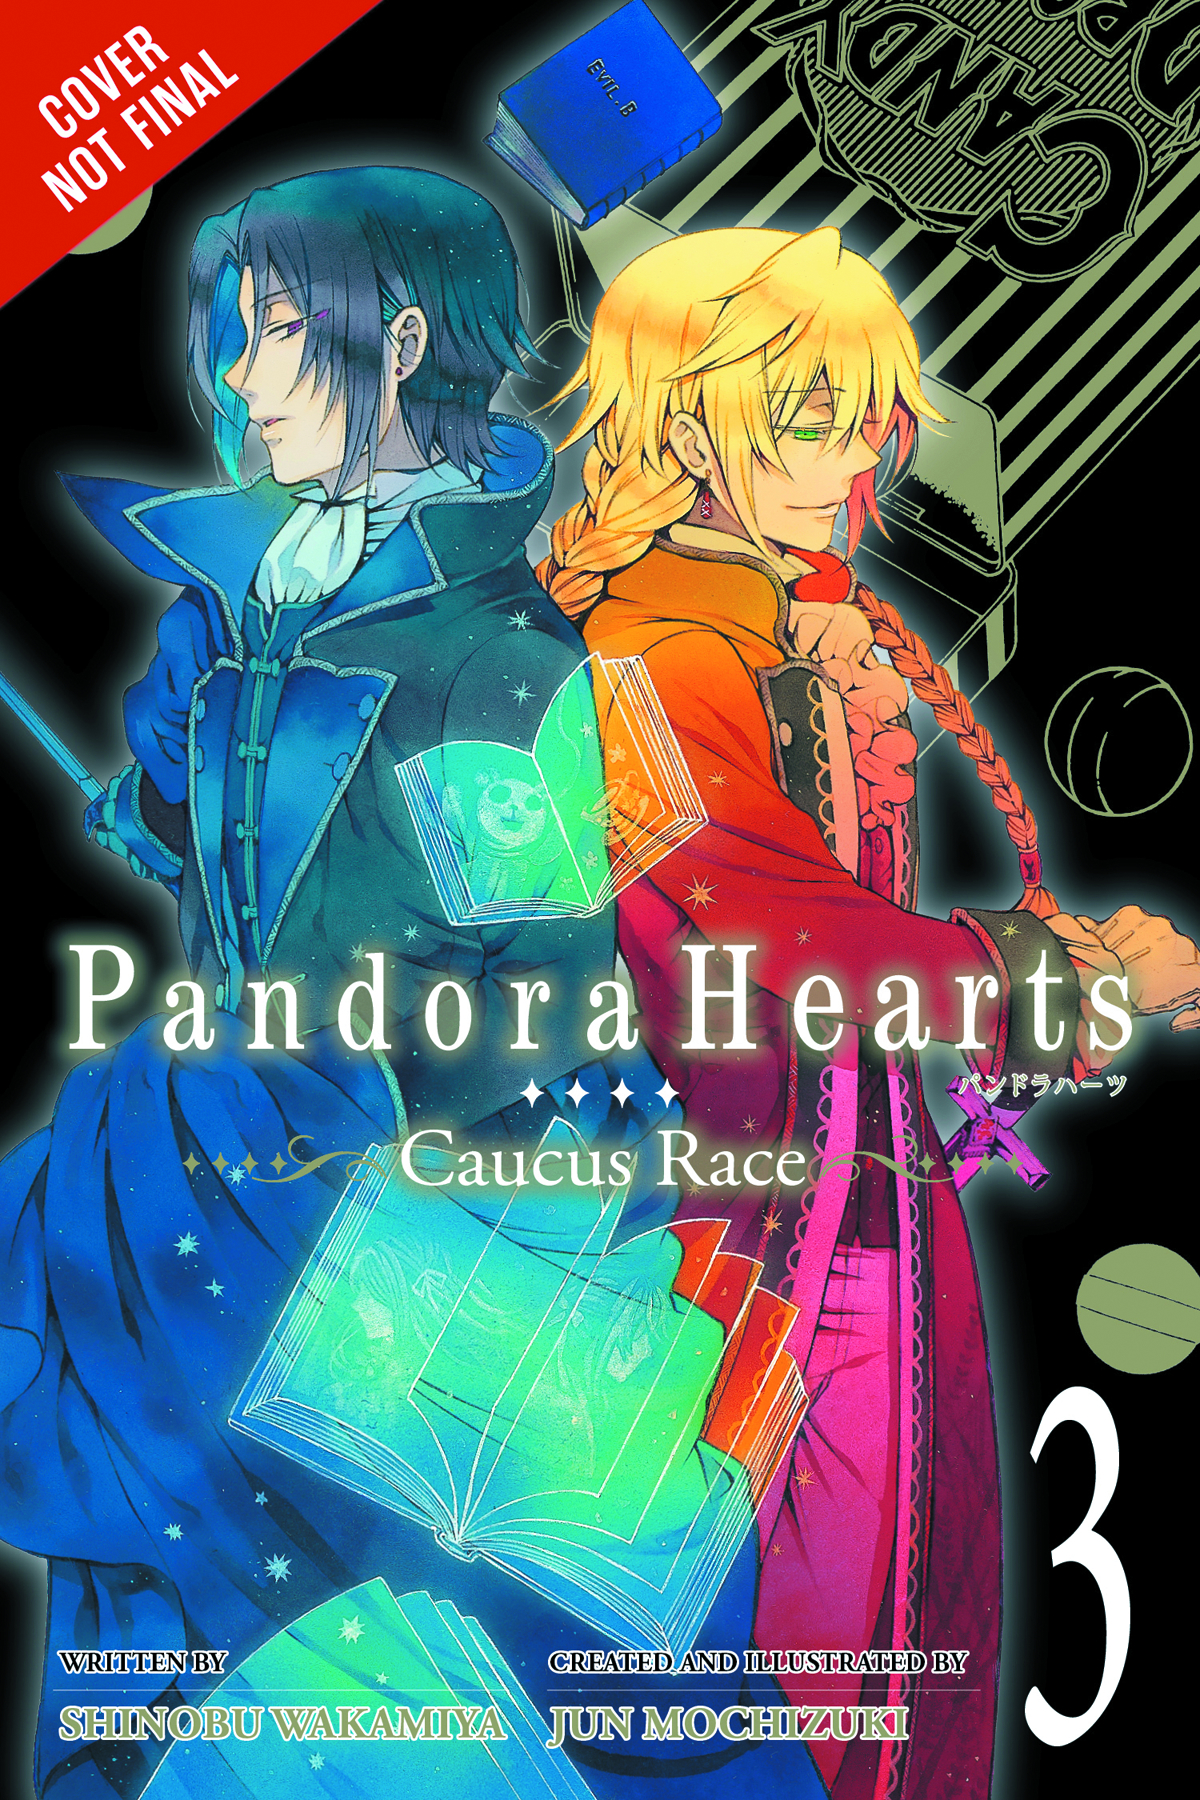 PANDORA HEARTS CAUCUS RACE NOVEL VOL 03